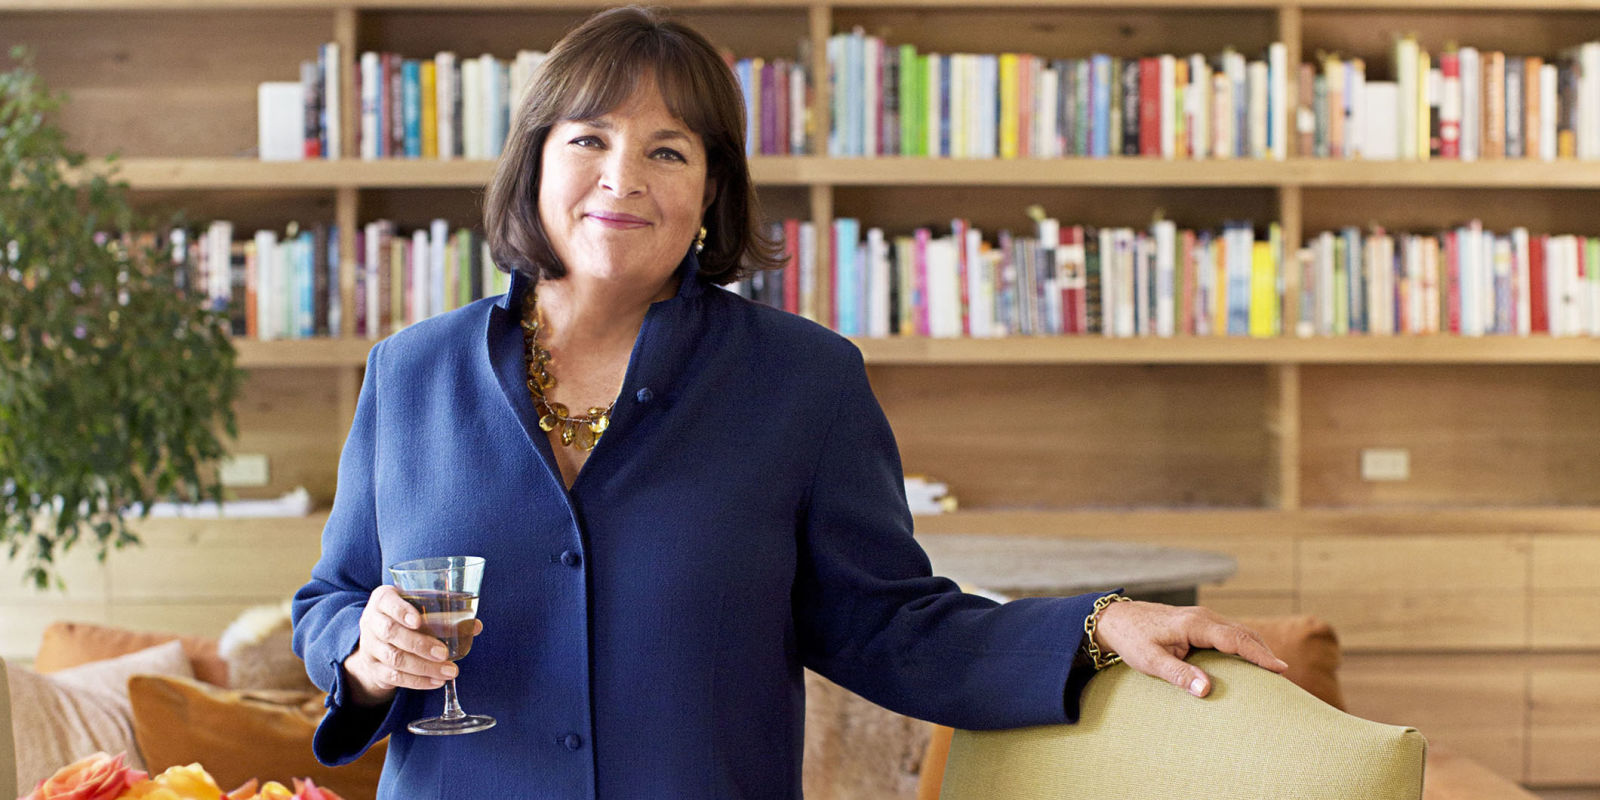 Ina Garten, 2017 clothing style & tips of the beautiful attractive  writer & Aquarius